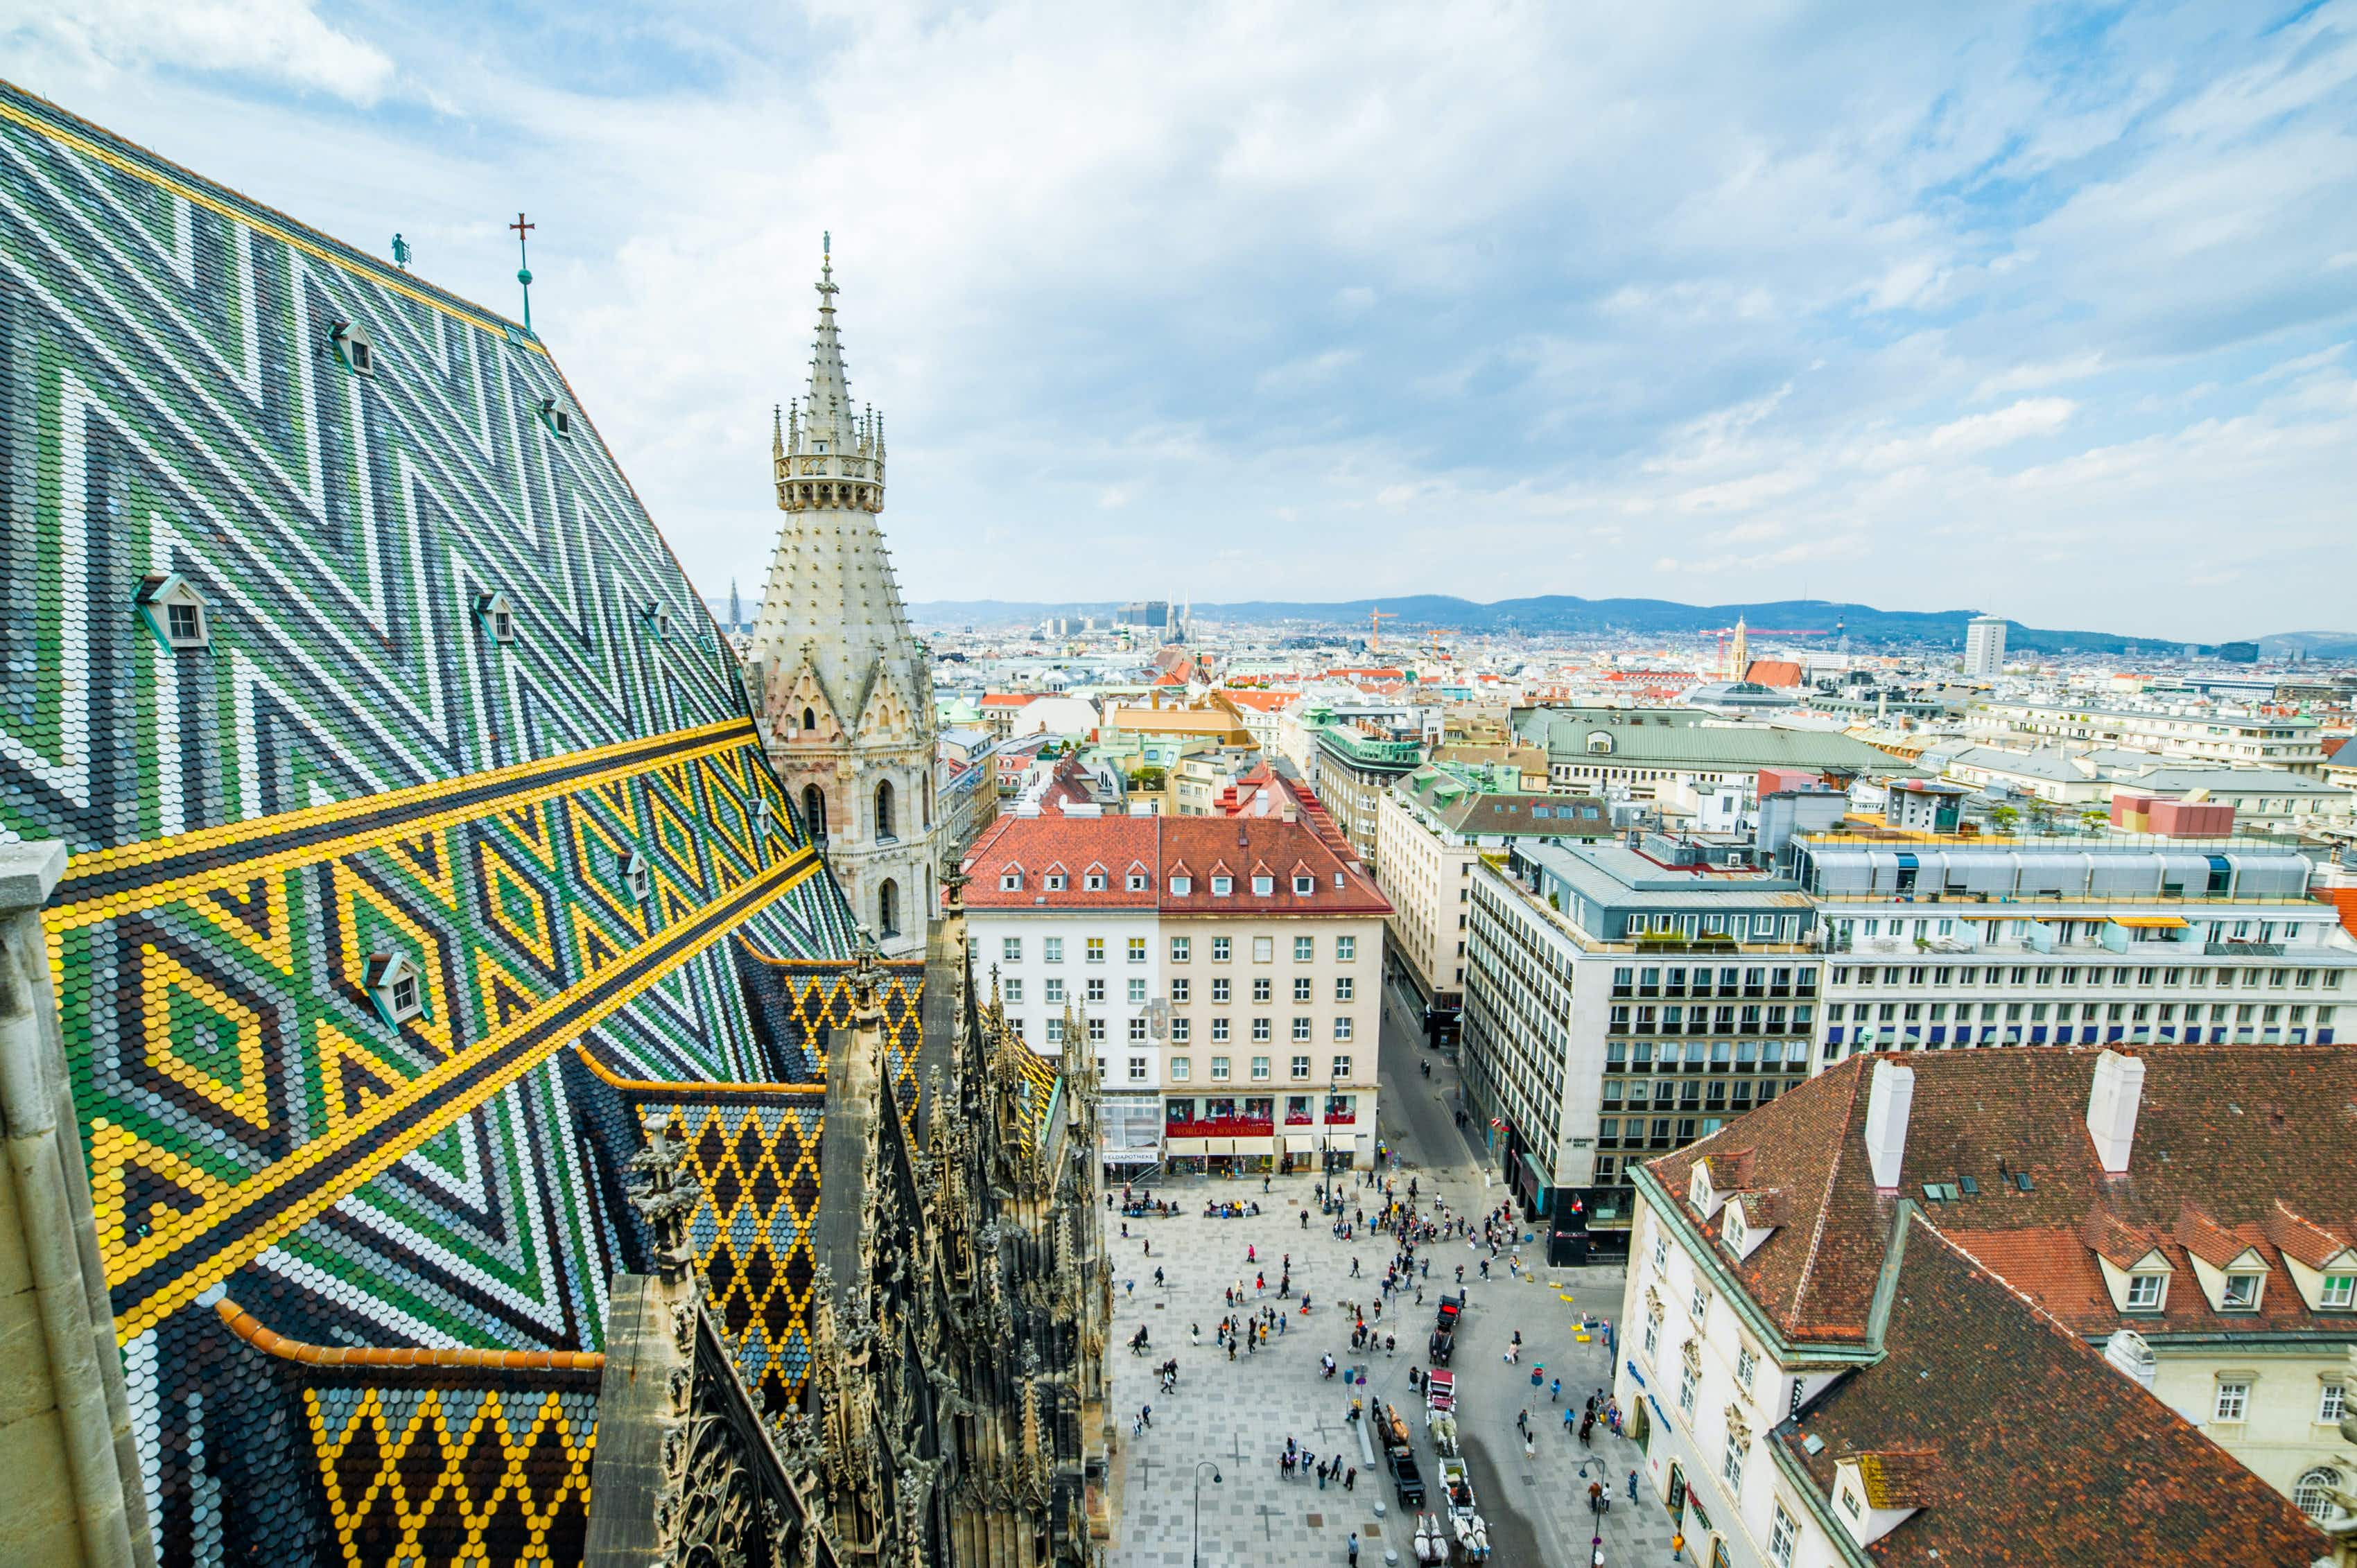 Vienna has been declared the world's most liveable city for the second year in a row ©ver0nicka/Shutterstock